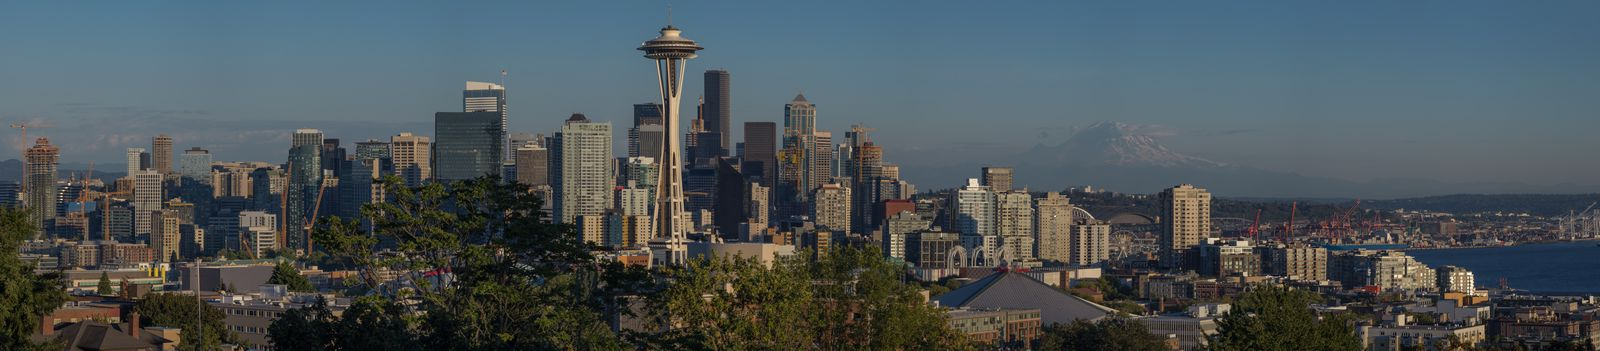 Con ustedes, Seattle